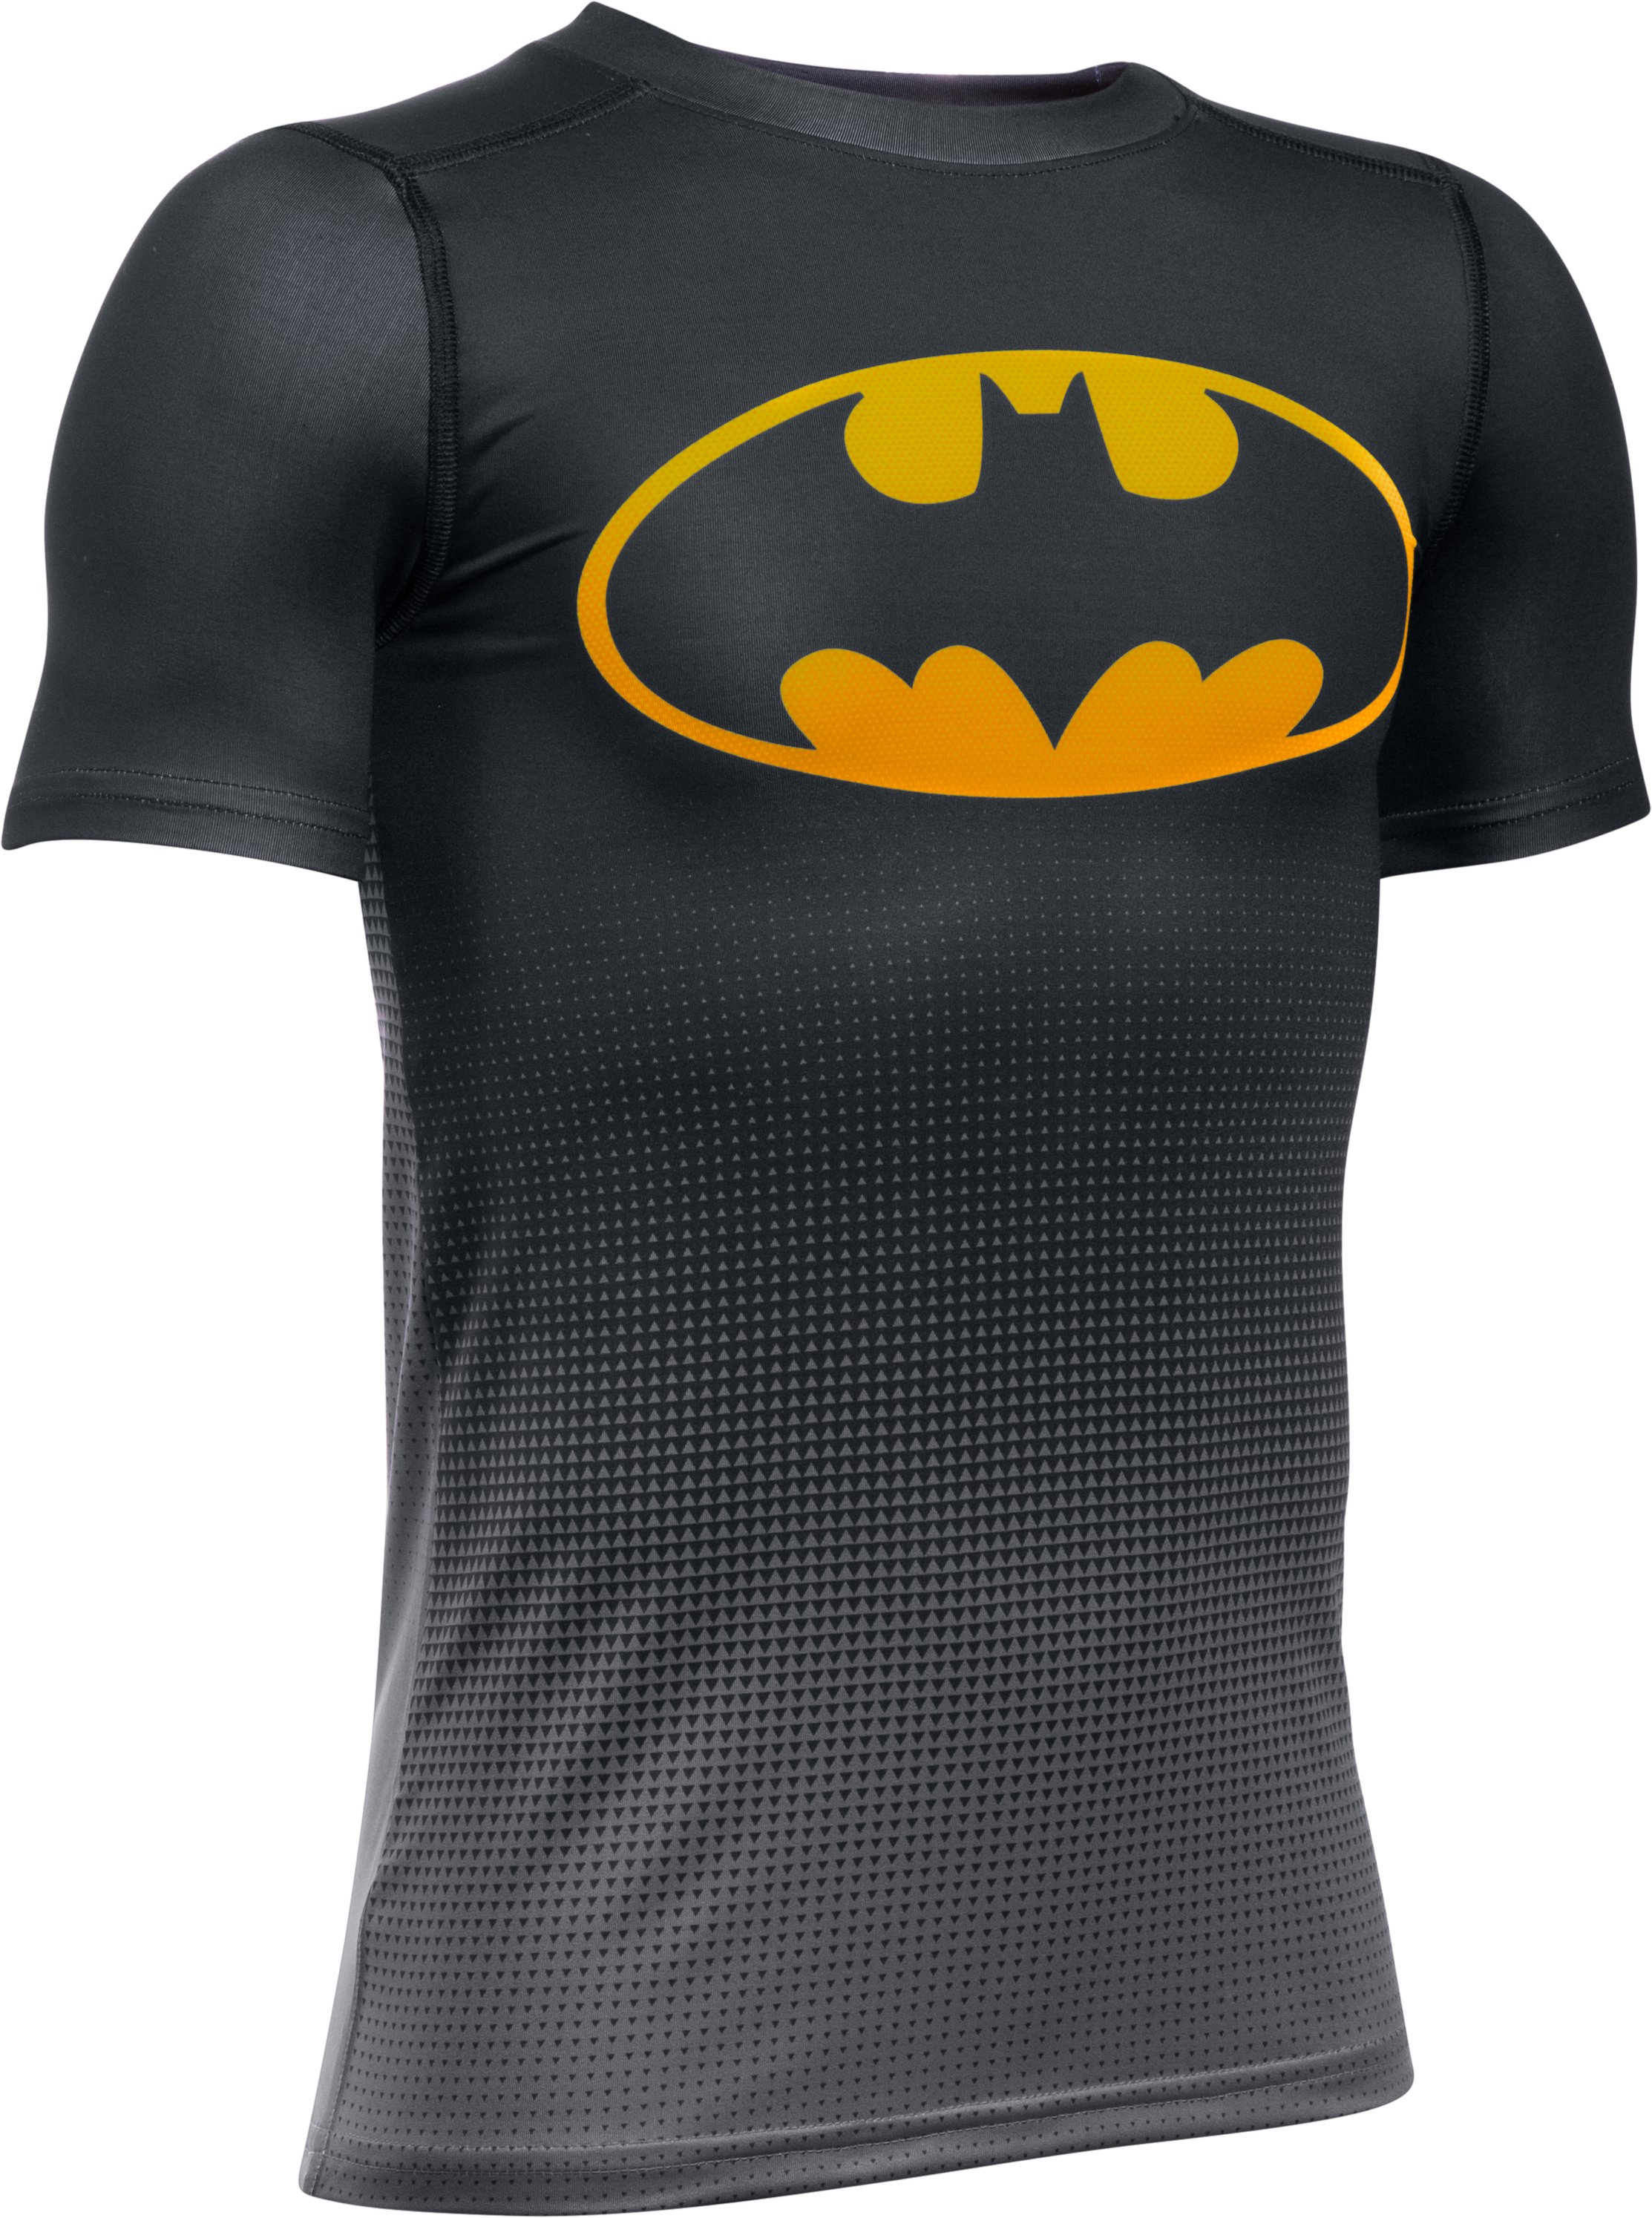 Boys' Under Armour® Alter Ego DC Comics Fitted Baselayer, Black